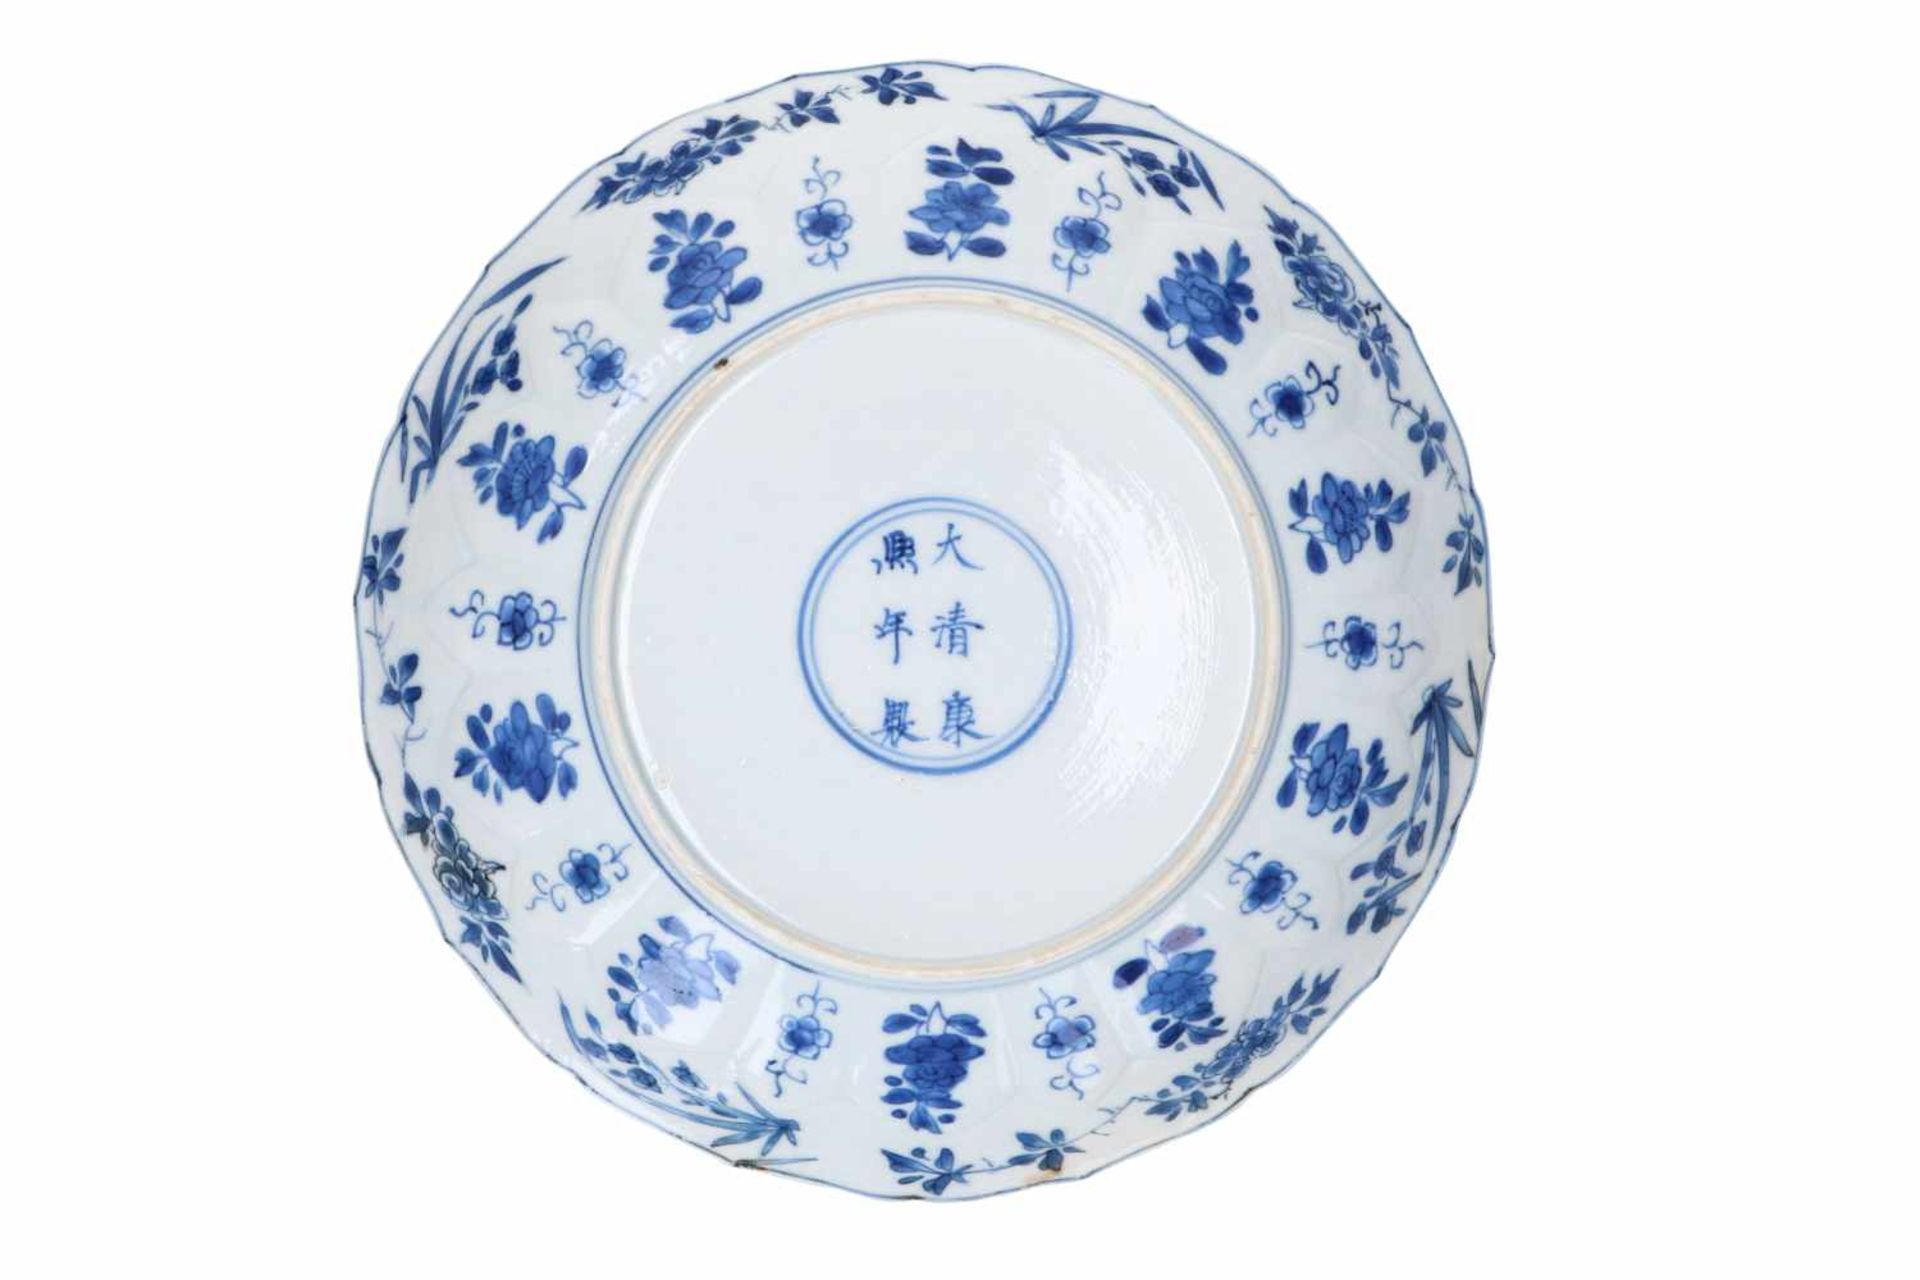 A blue and white porcelain dish with scalloped rim, decorated with ladies in a garden and flowers. - Bild 4 aus 5